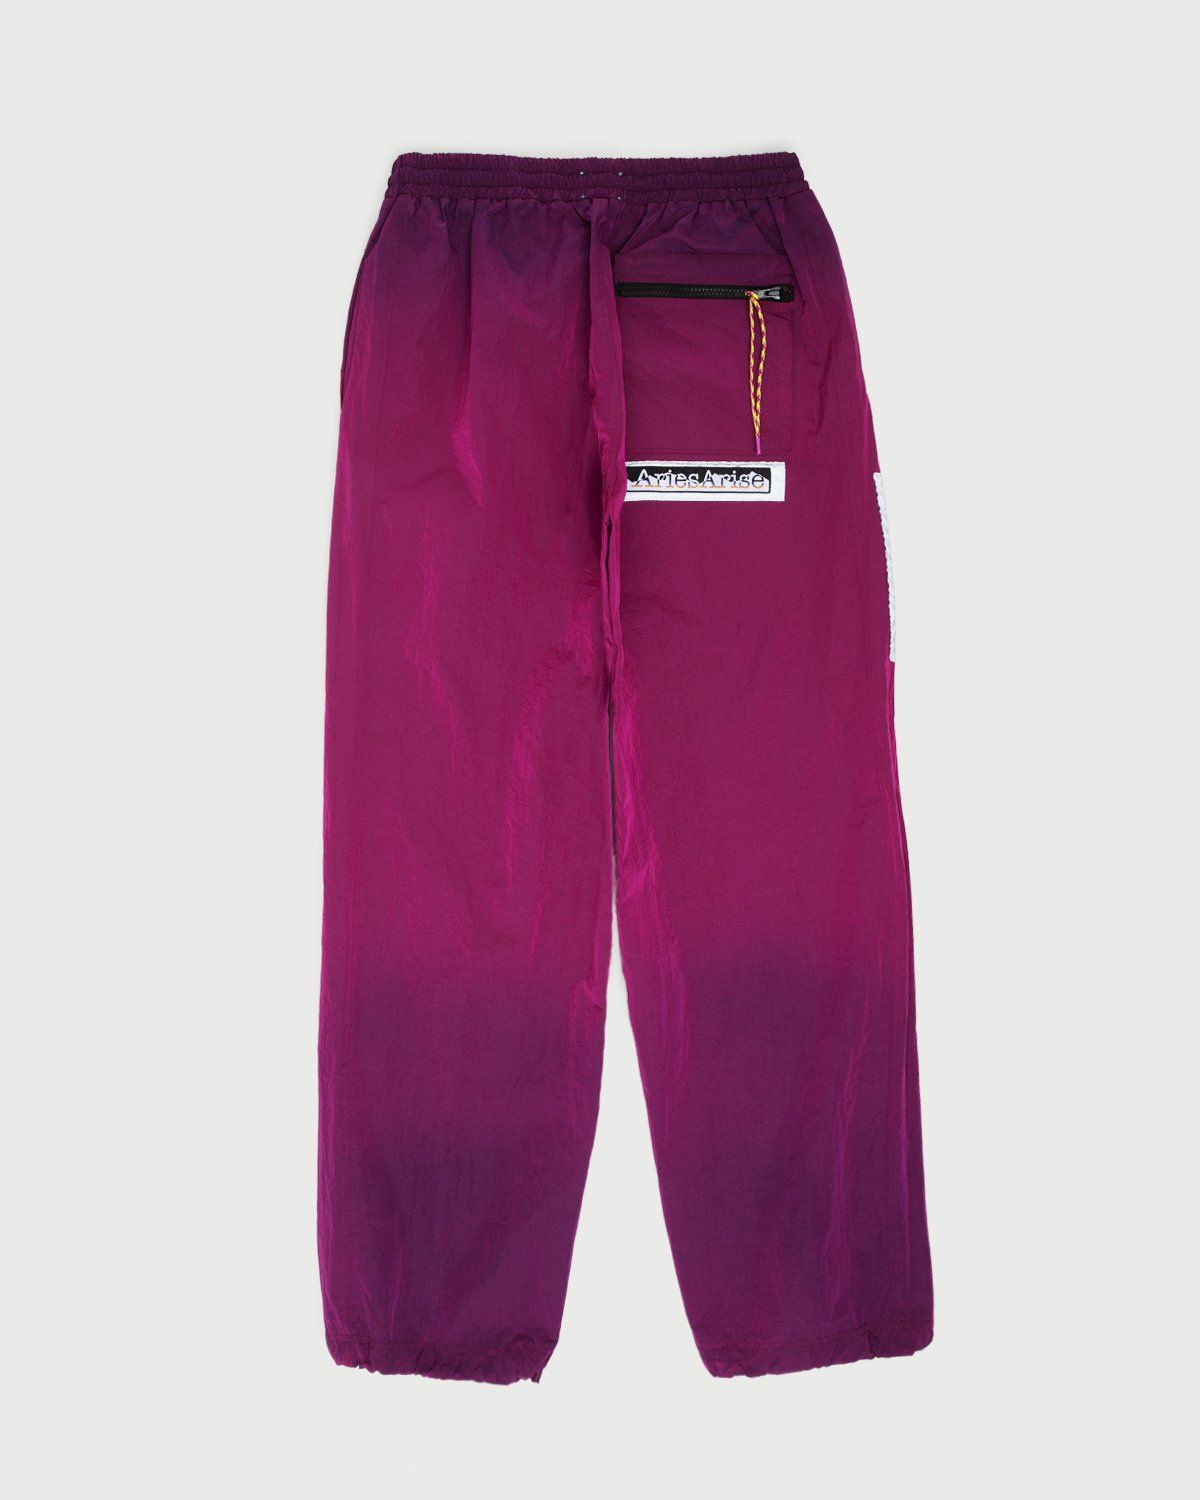 Aries - Ombre Dyed Track Pants Fuchsia - Image 4